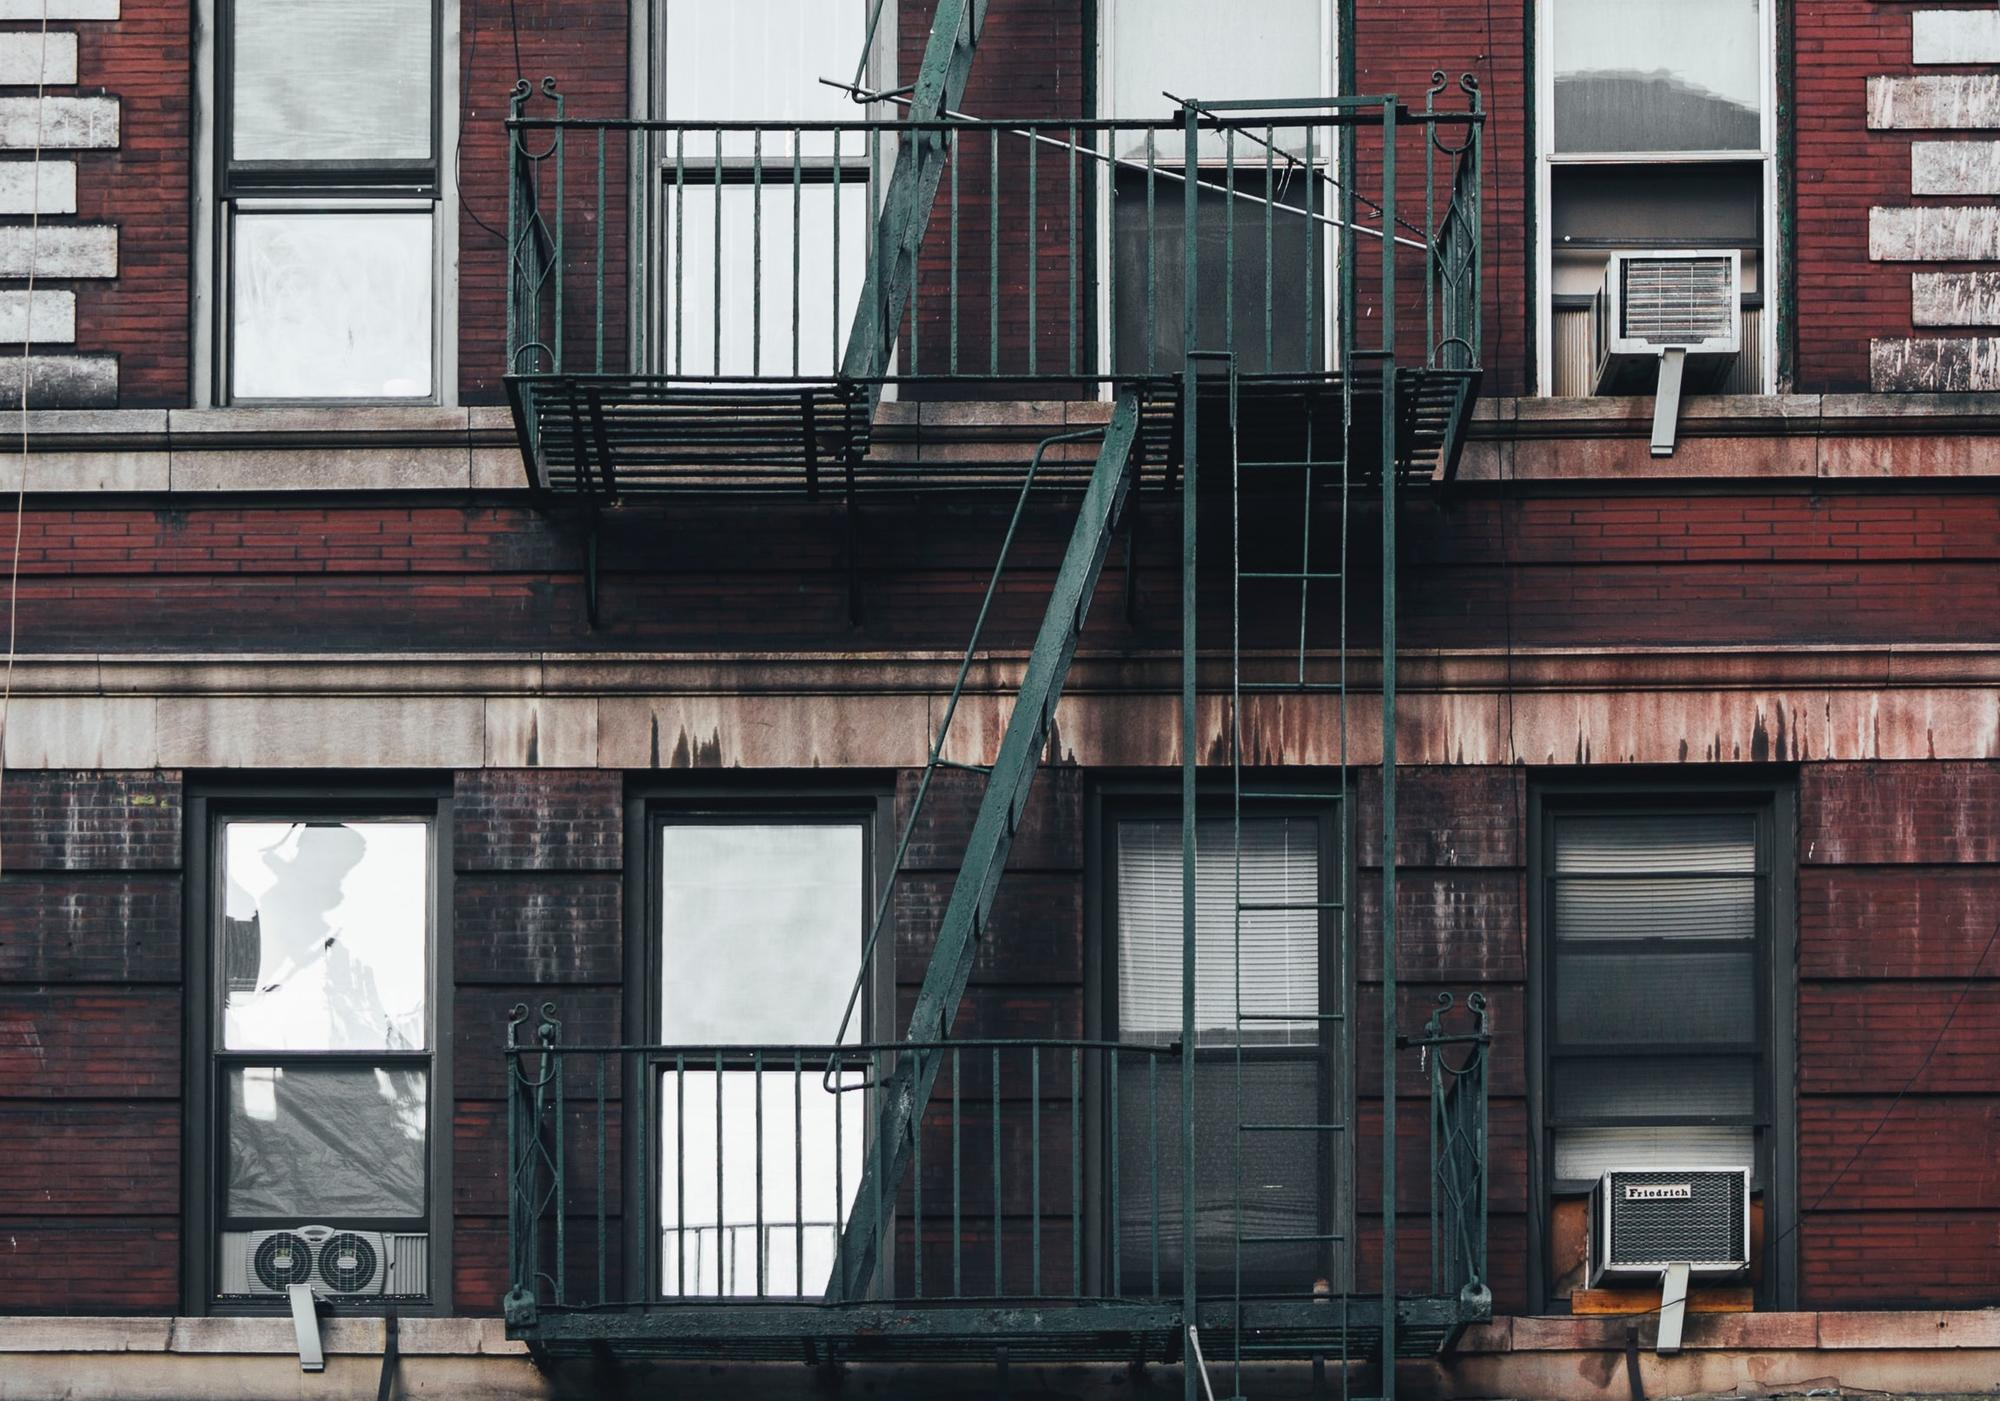 Two floors of New York City apartments, windows hold air conditioning units